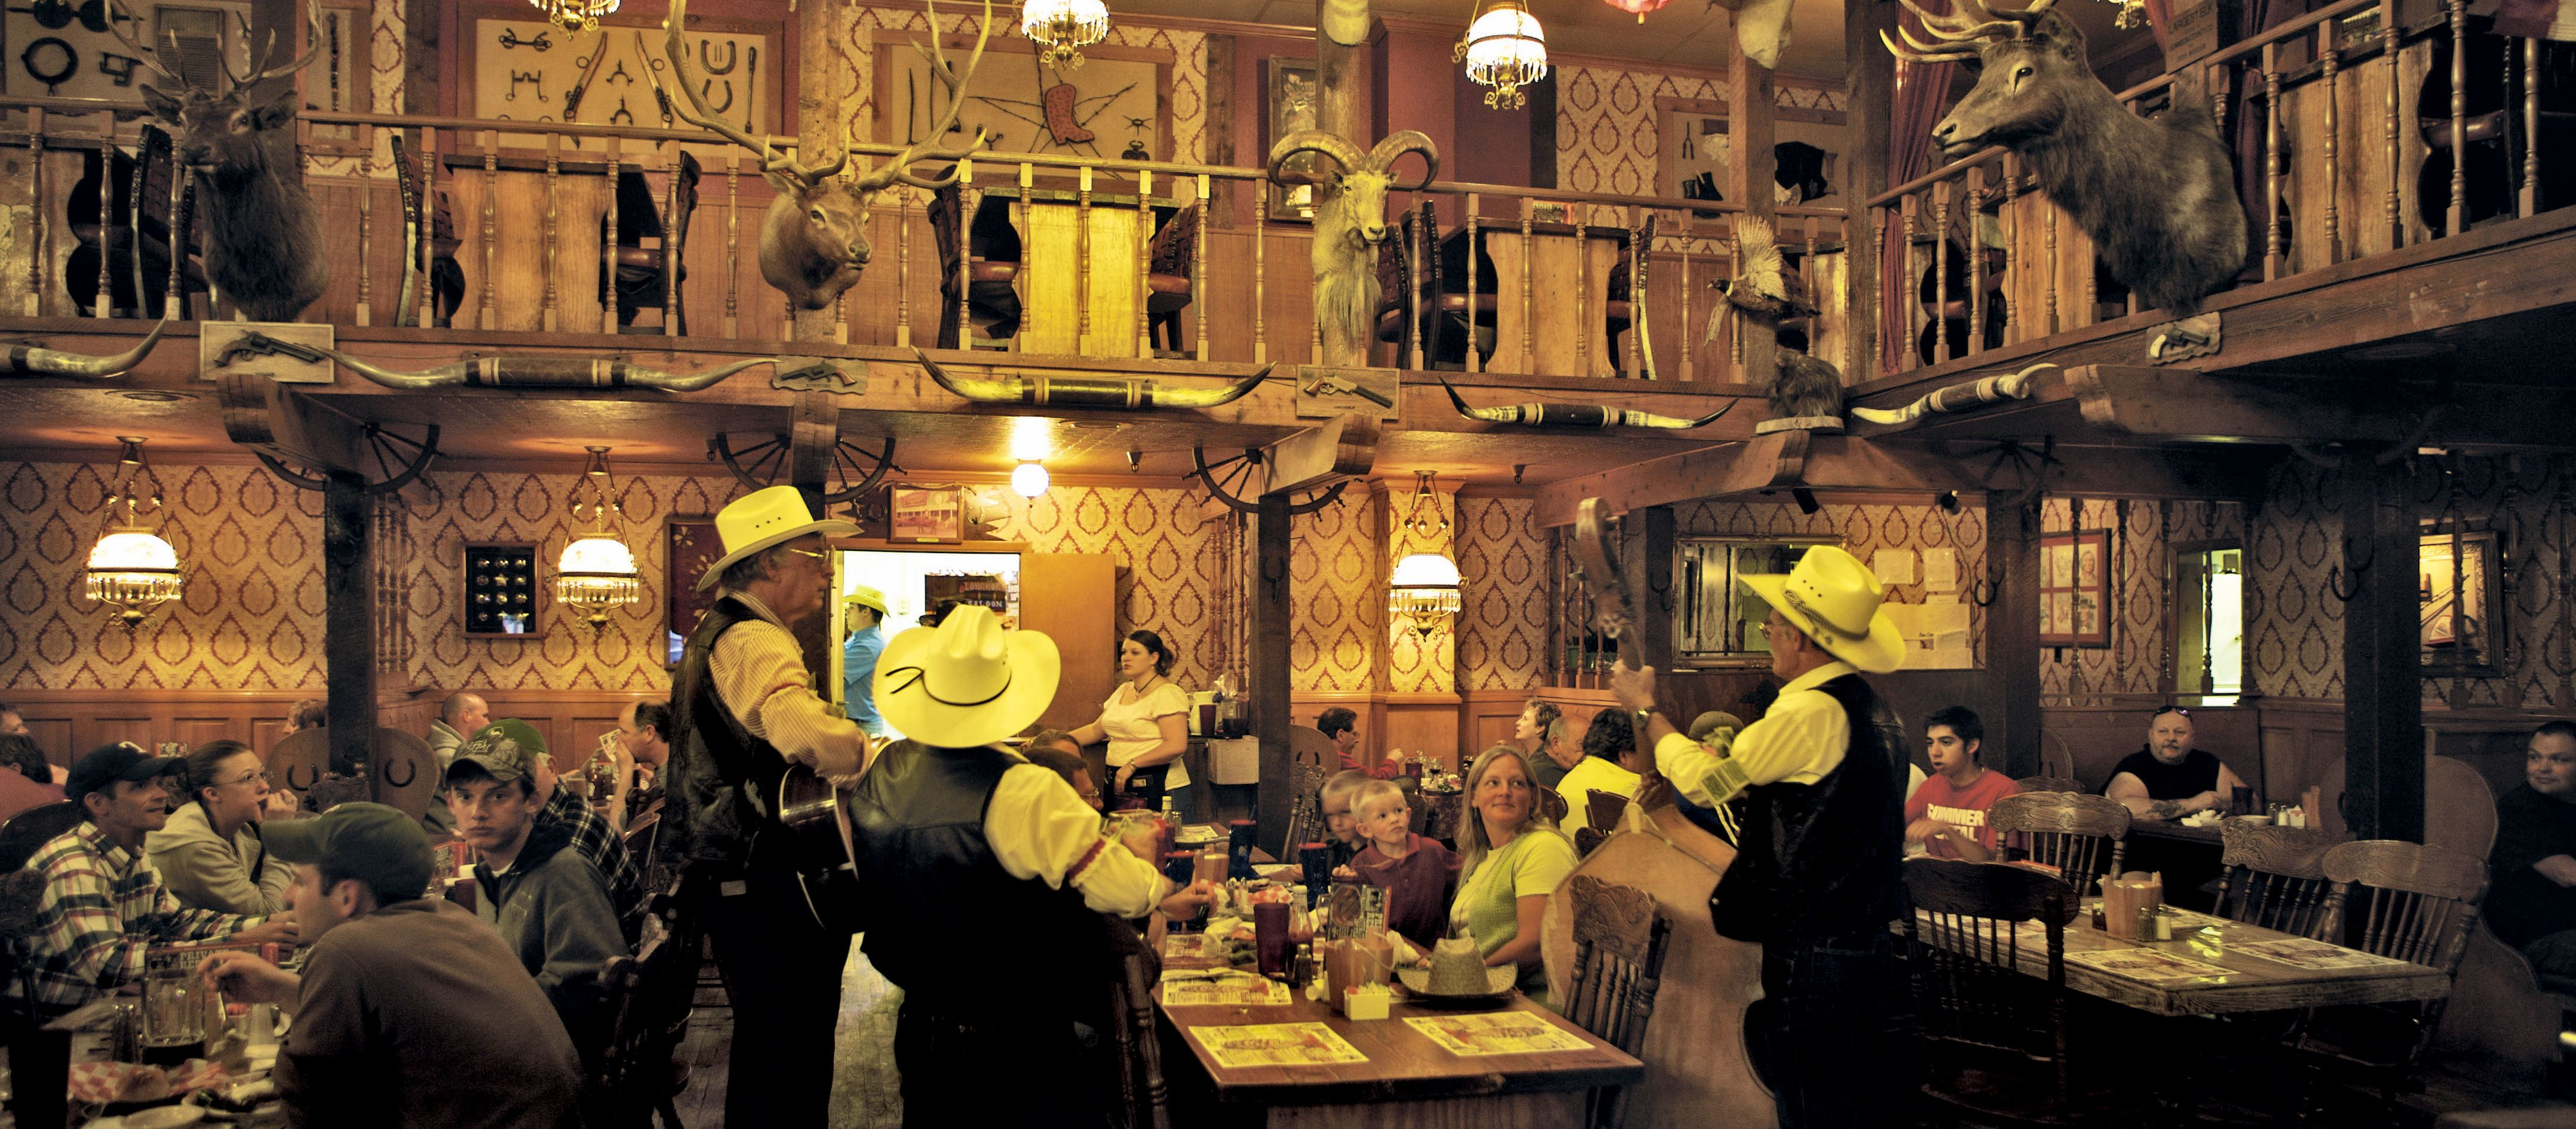 Big Texan Steak Ranch Restaurant in Amarillo, Texas